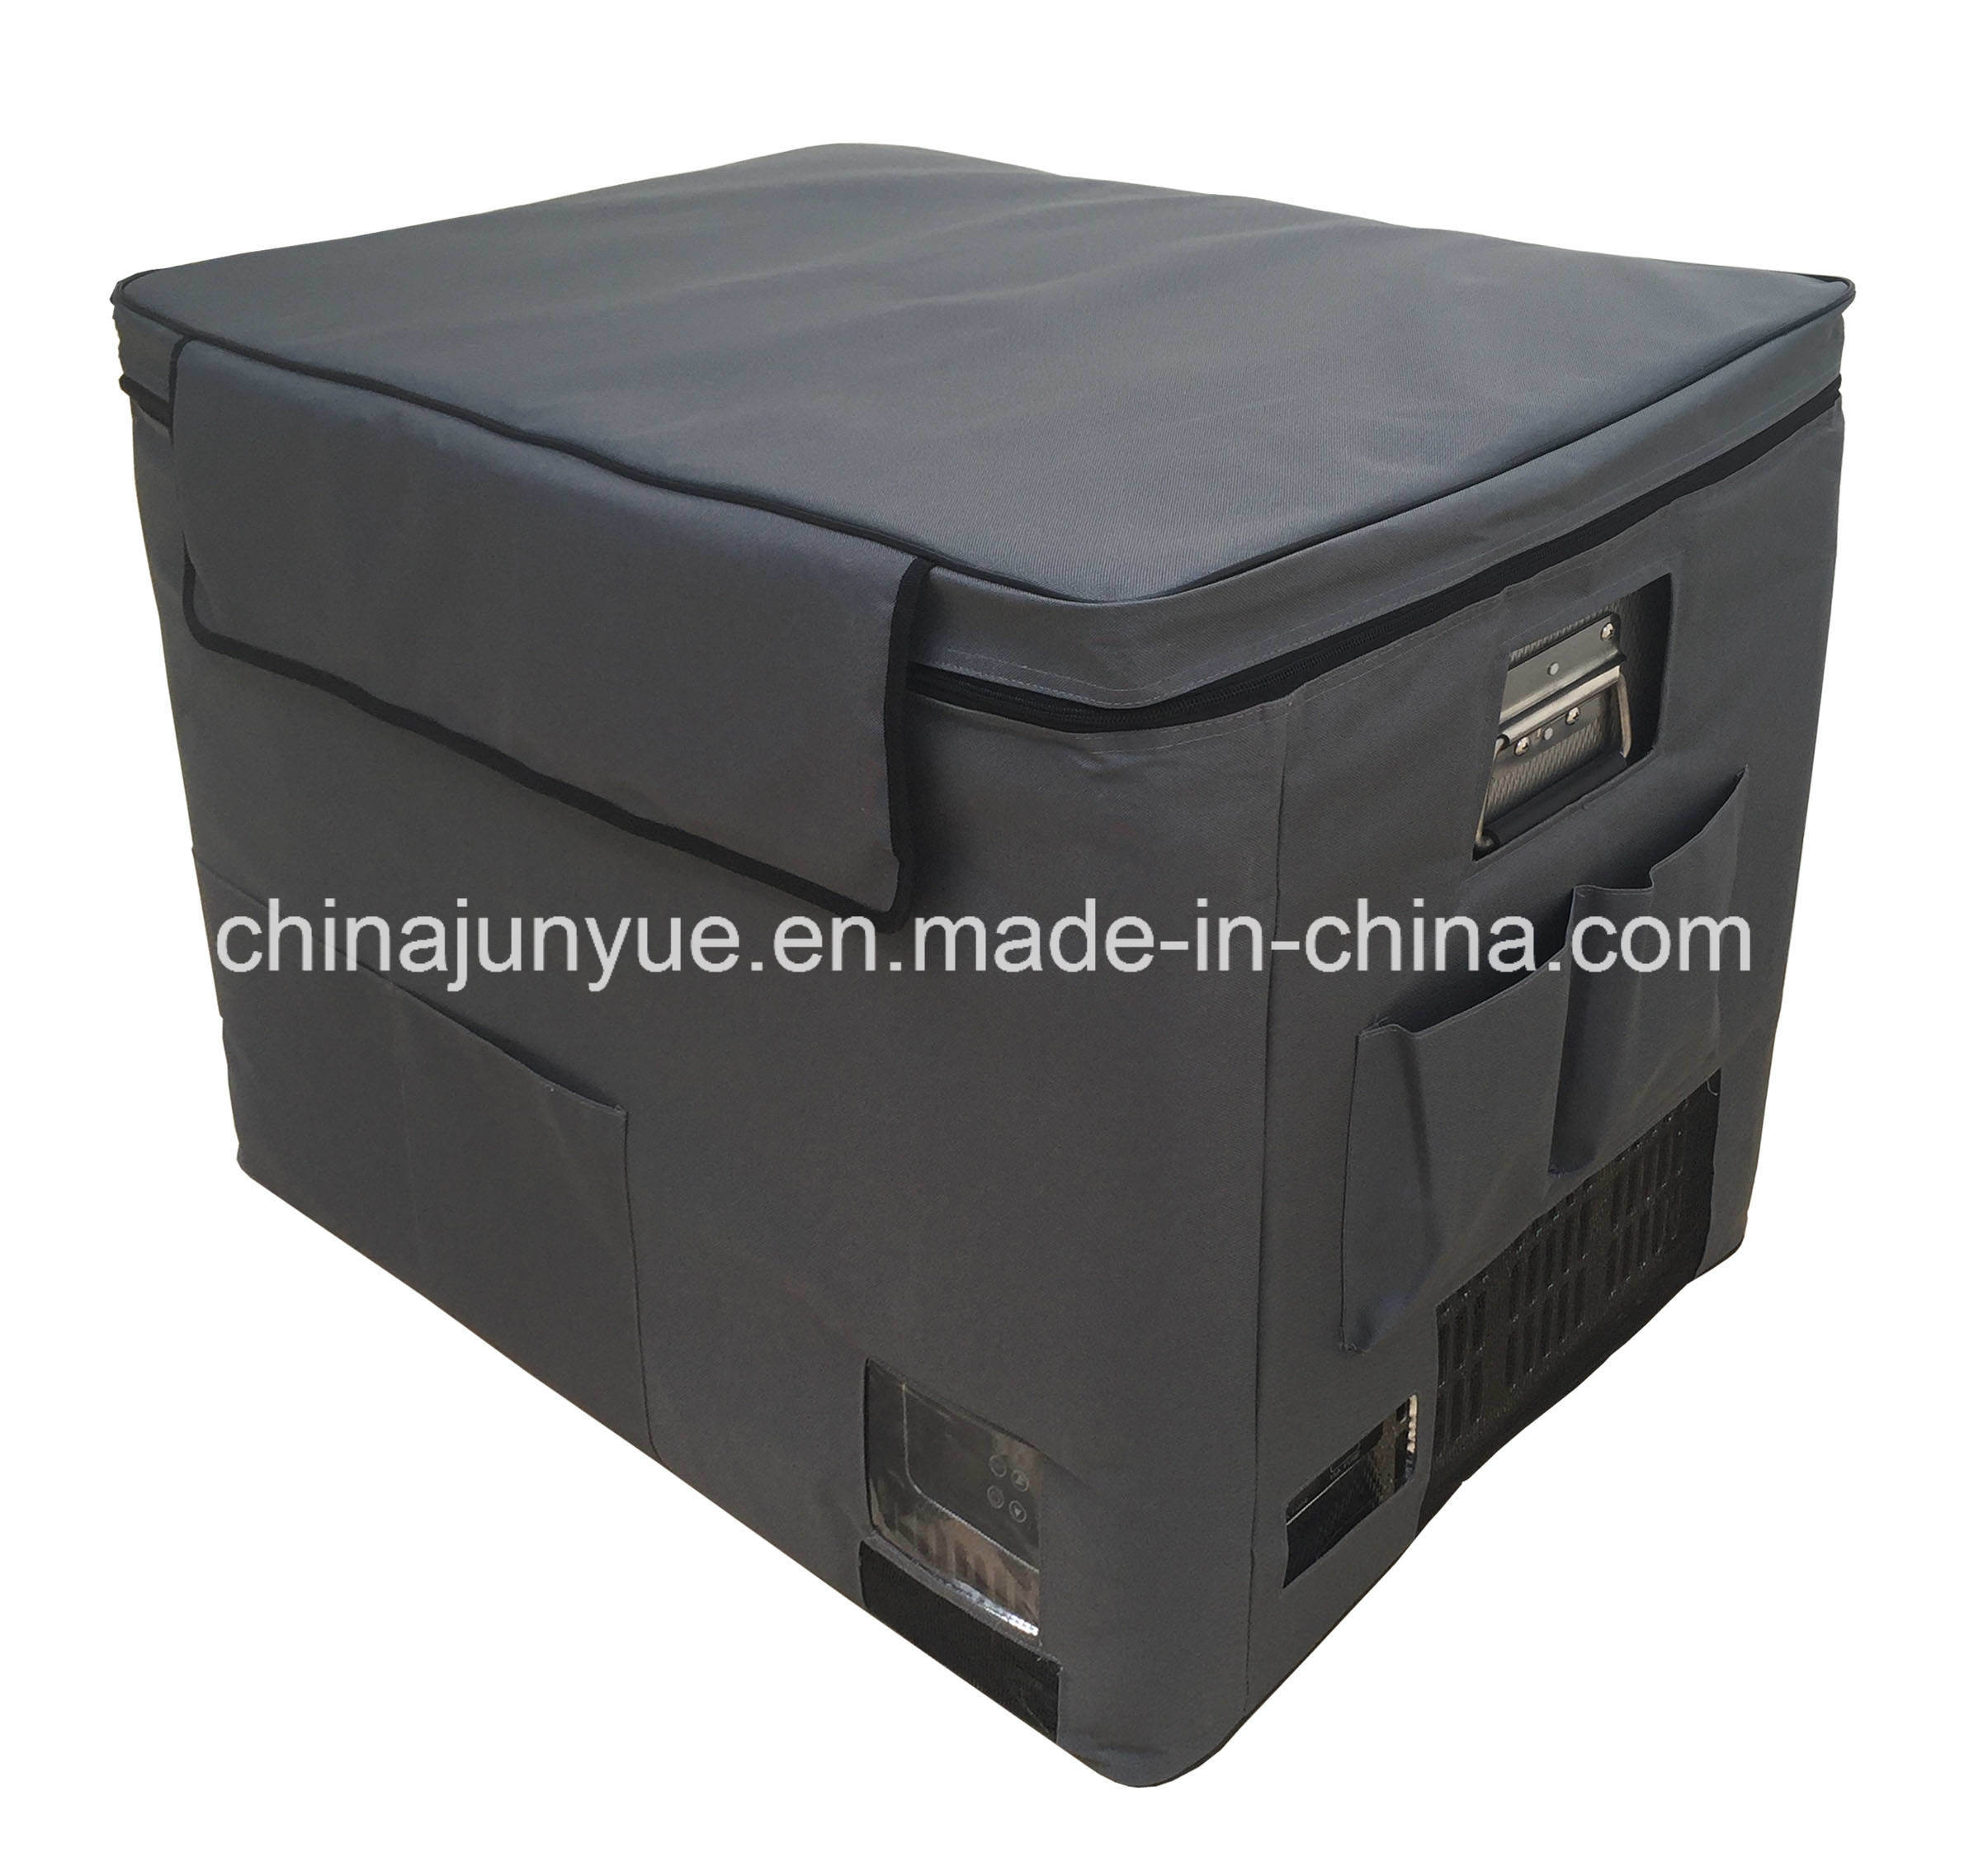 Bd/Bc-80L 12/24V DC Stainless Steel Chest Freezer Curved Bottom